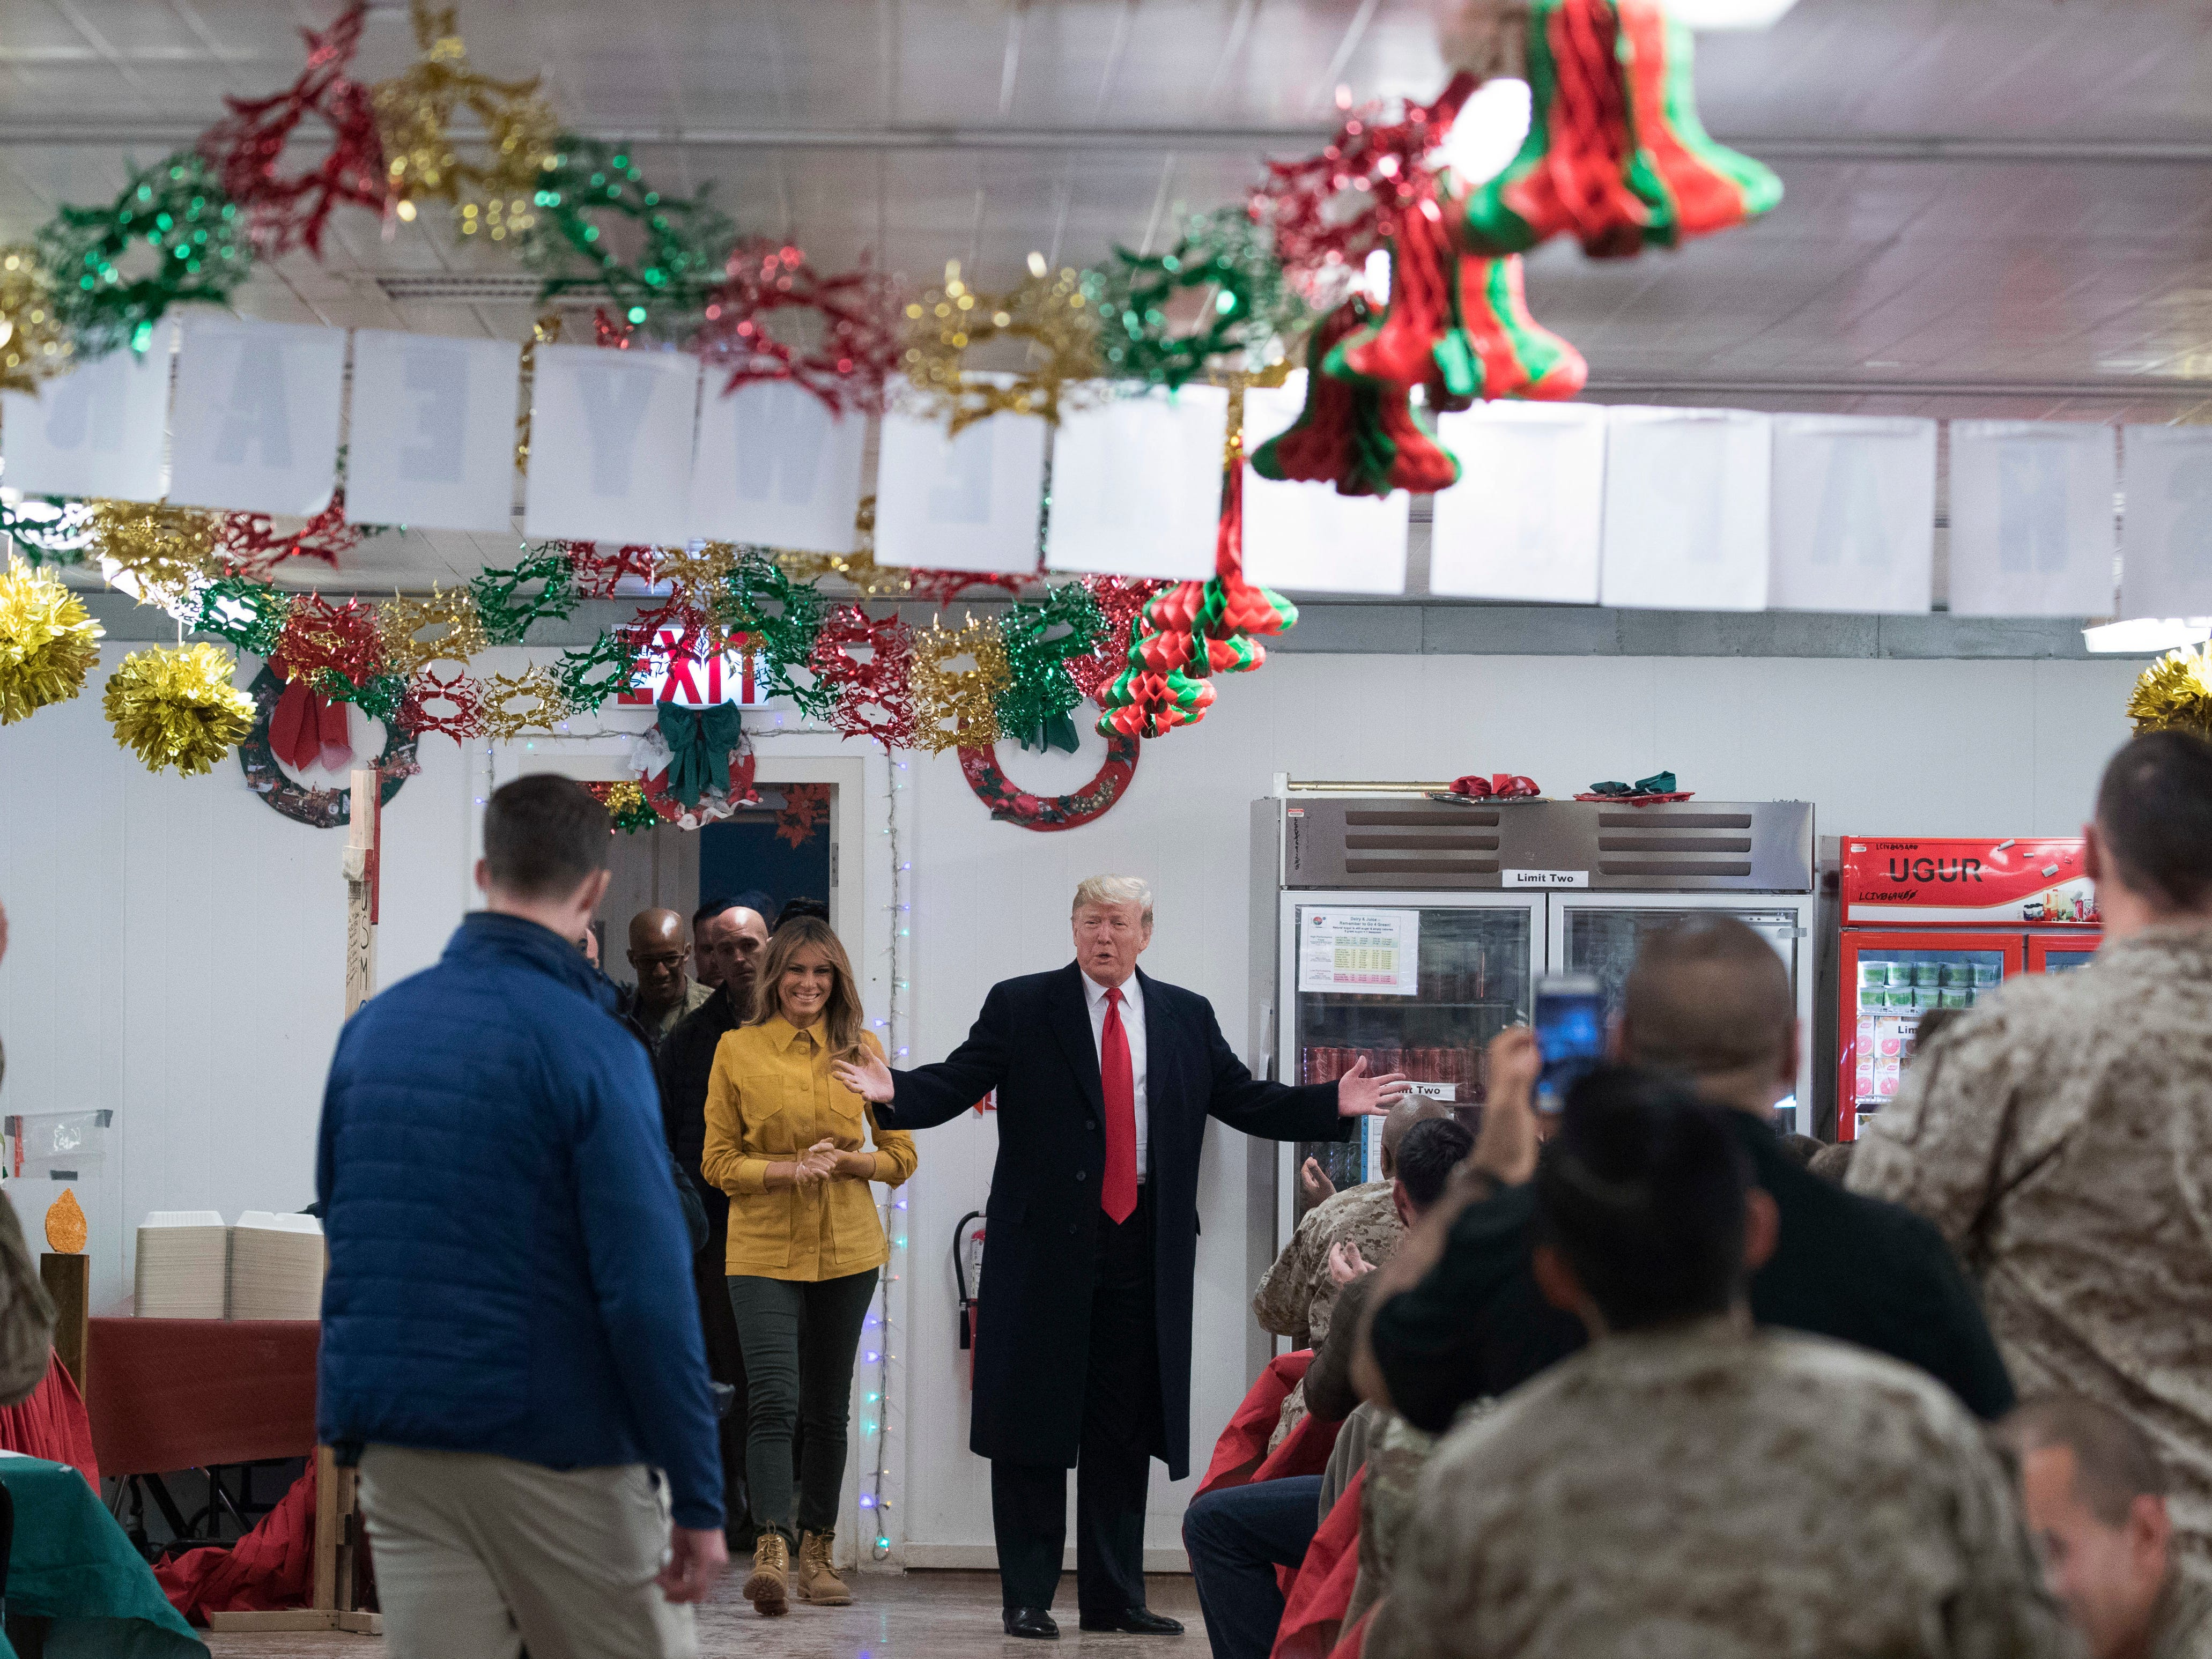 President Donald Trump and first lady Melania Trump arrive to visit with members of the military at a dining hall at Al Asad Air Base, Iraq, Wednesday, Dec. 26, 2018. (AP Photo/Andrew Harnik) ORG XMIT: IRQA108